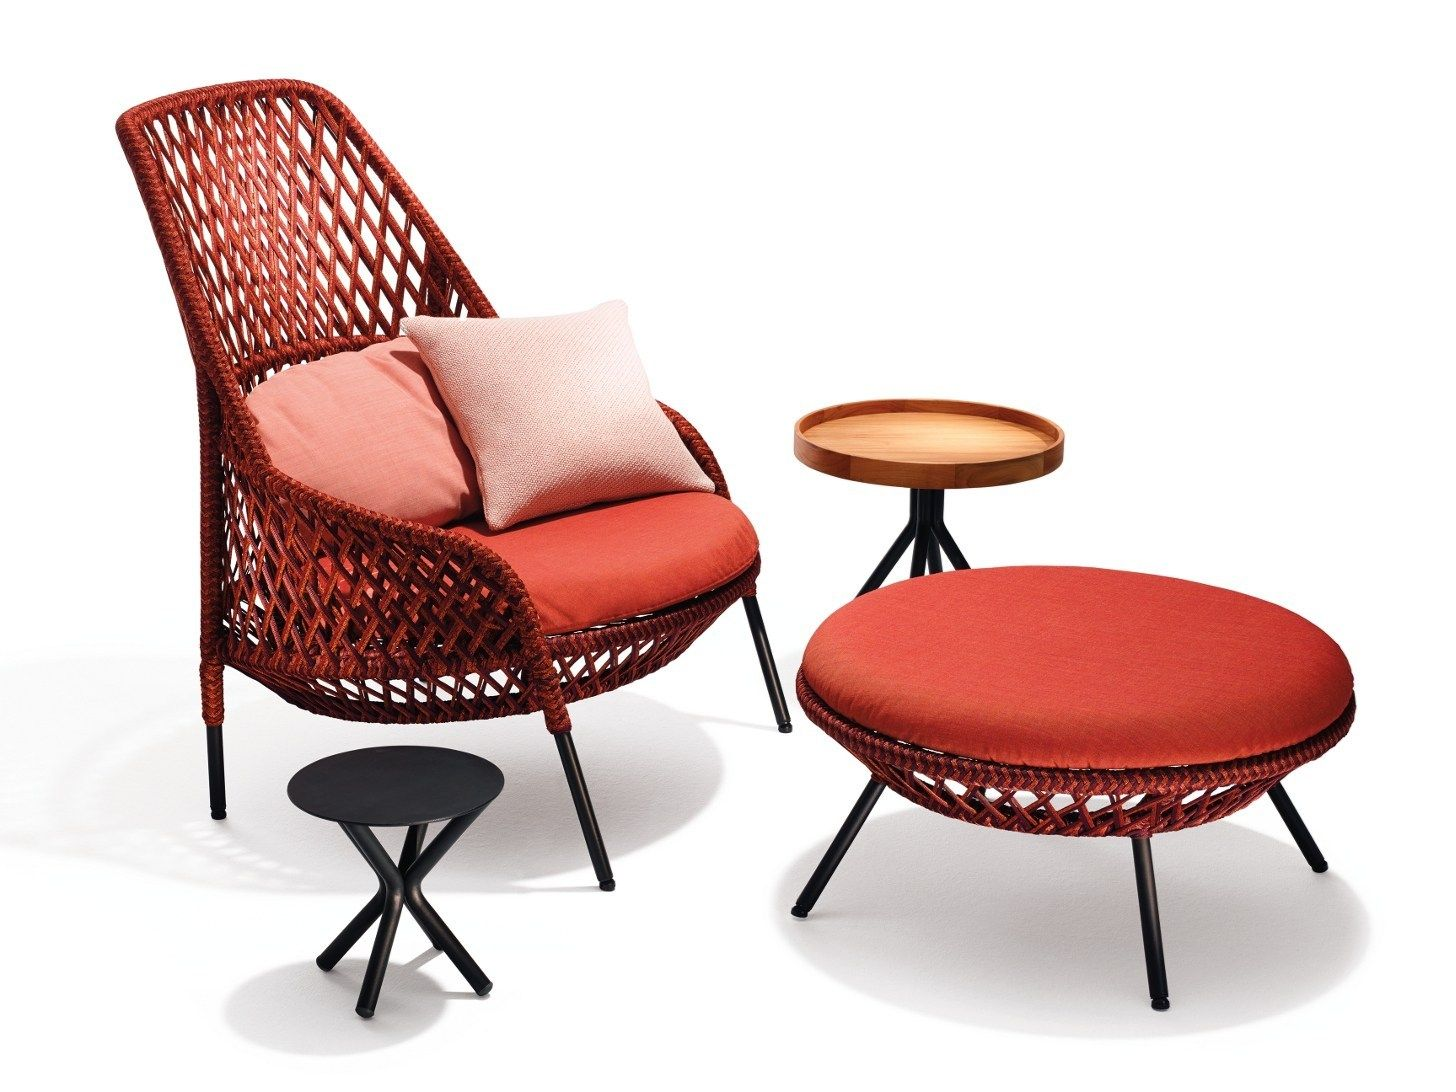 Dedon presents ahnda by stephen burks for Dedon outdoor furniture